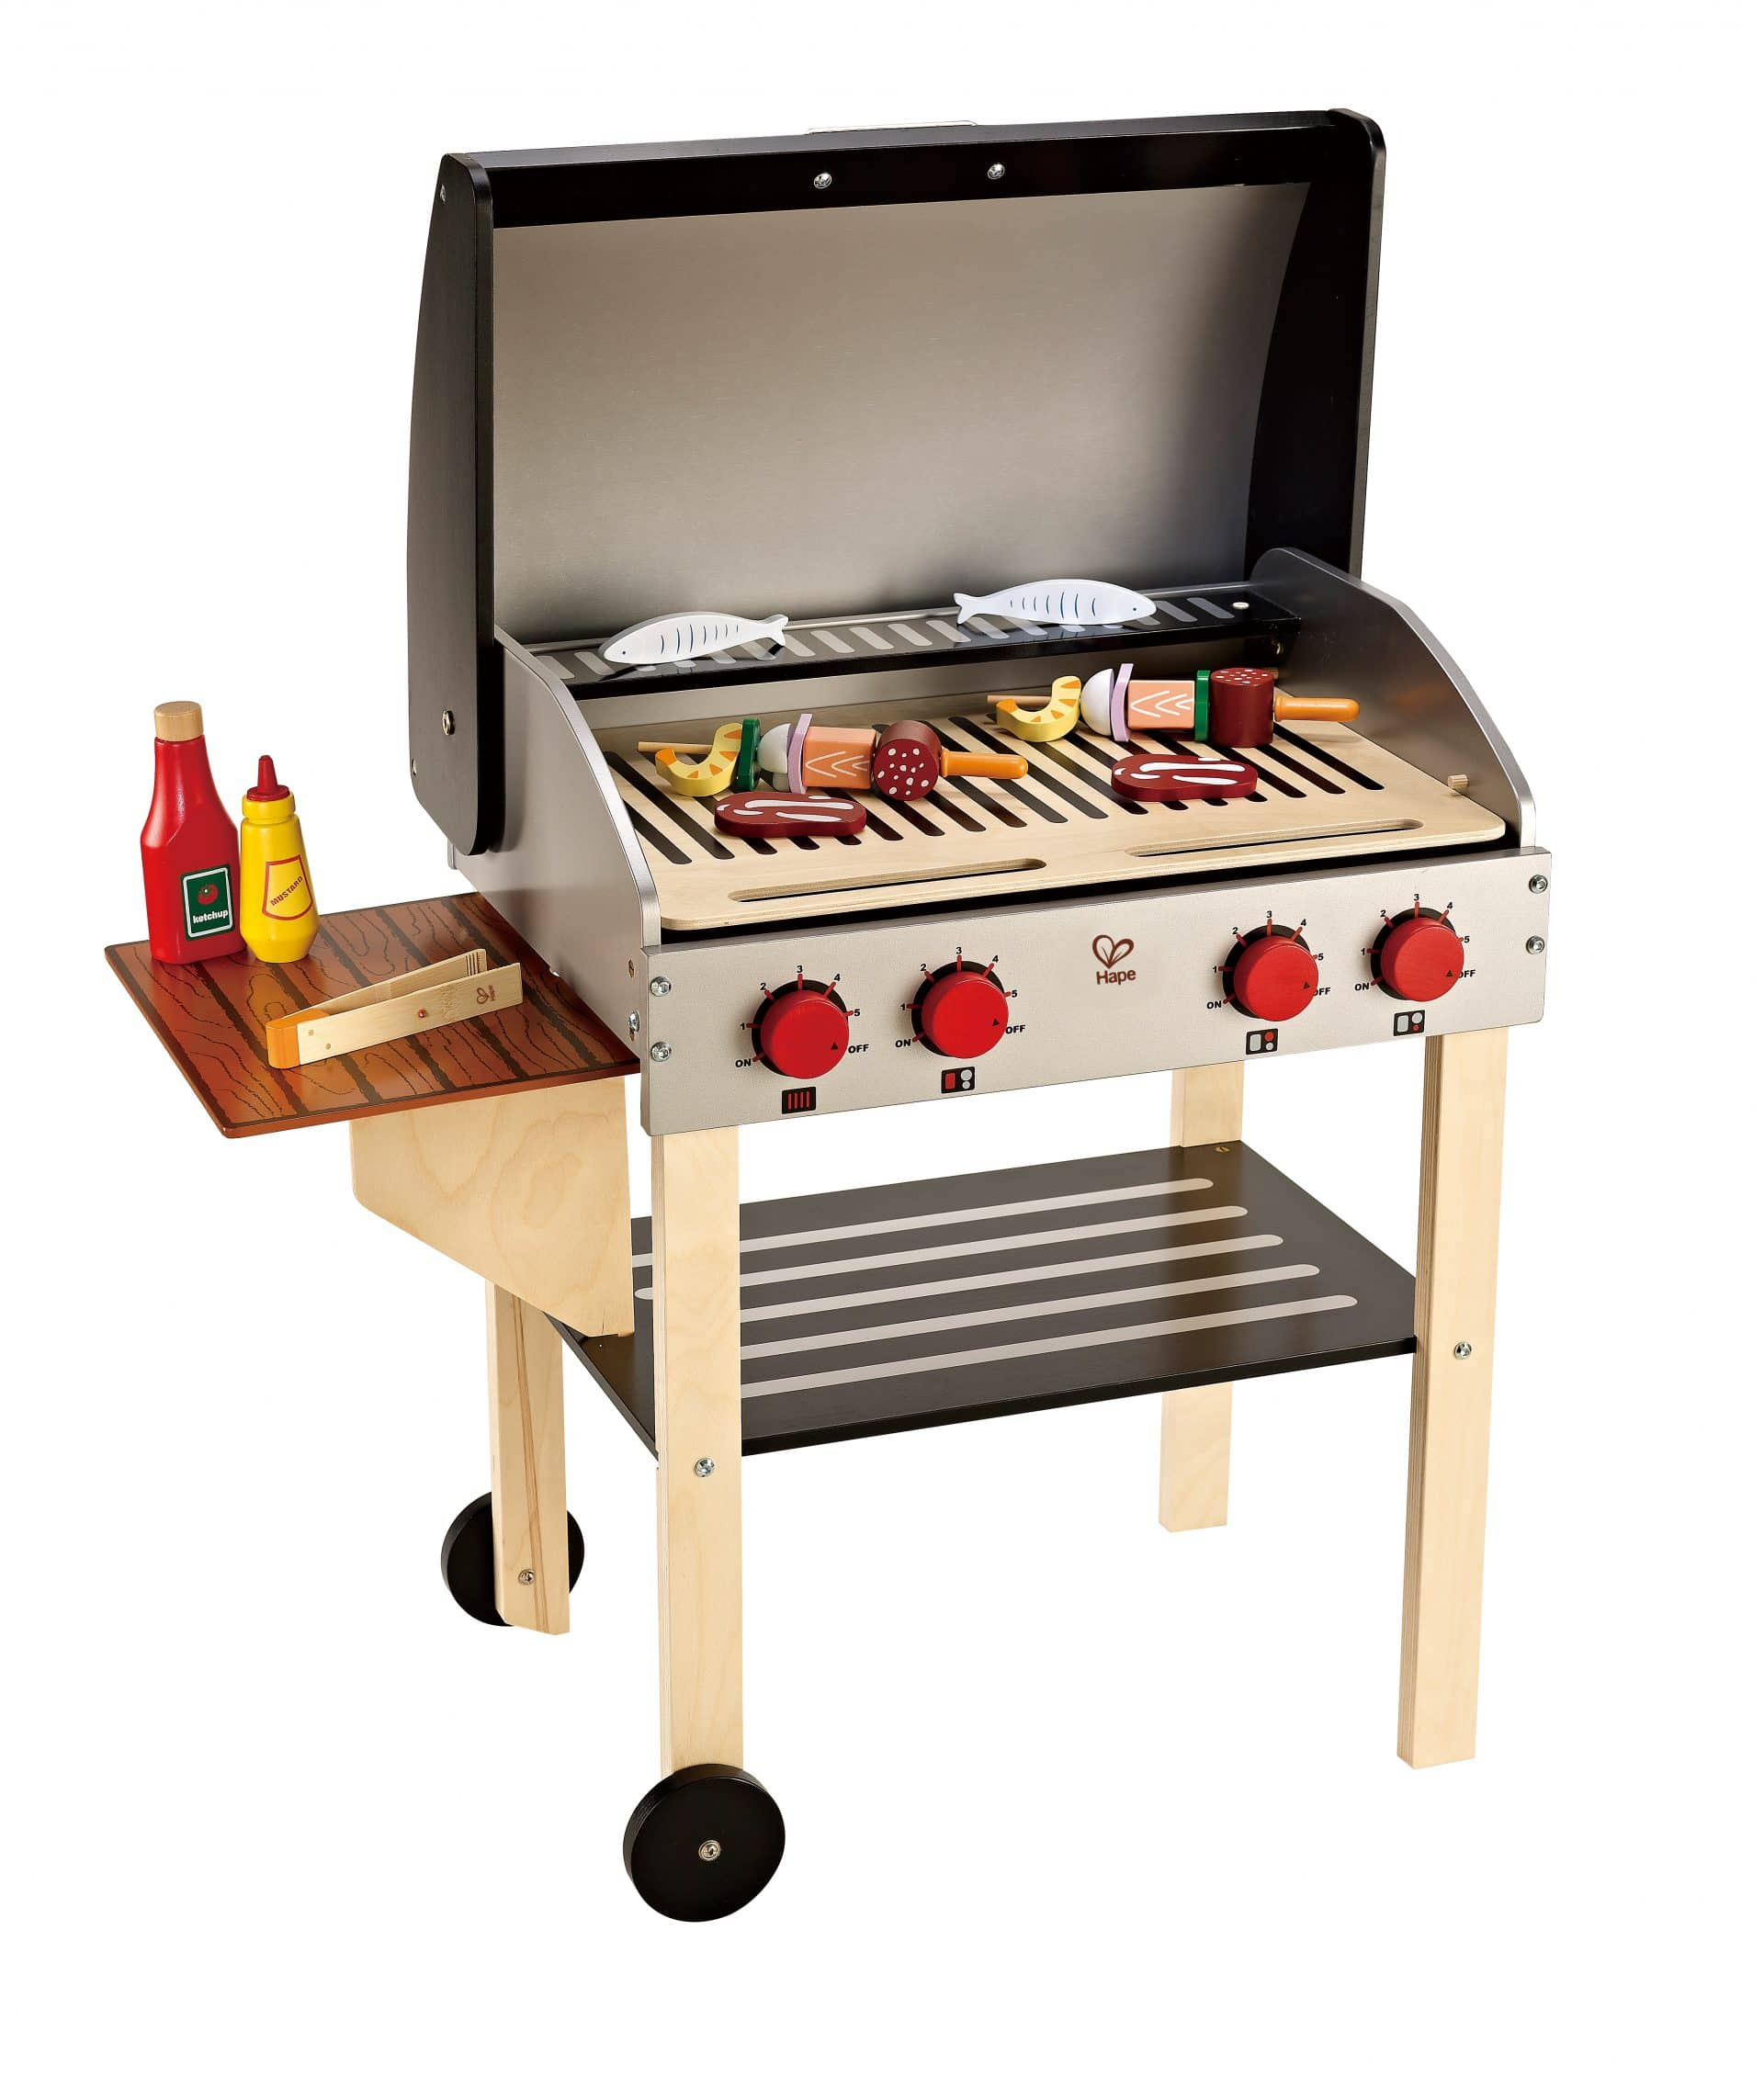 wooden toy grill for pretend play